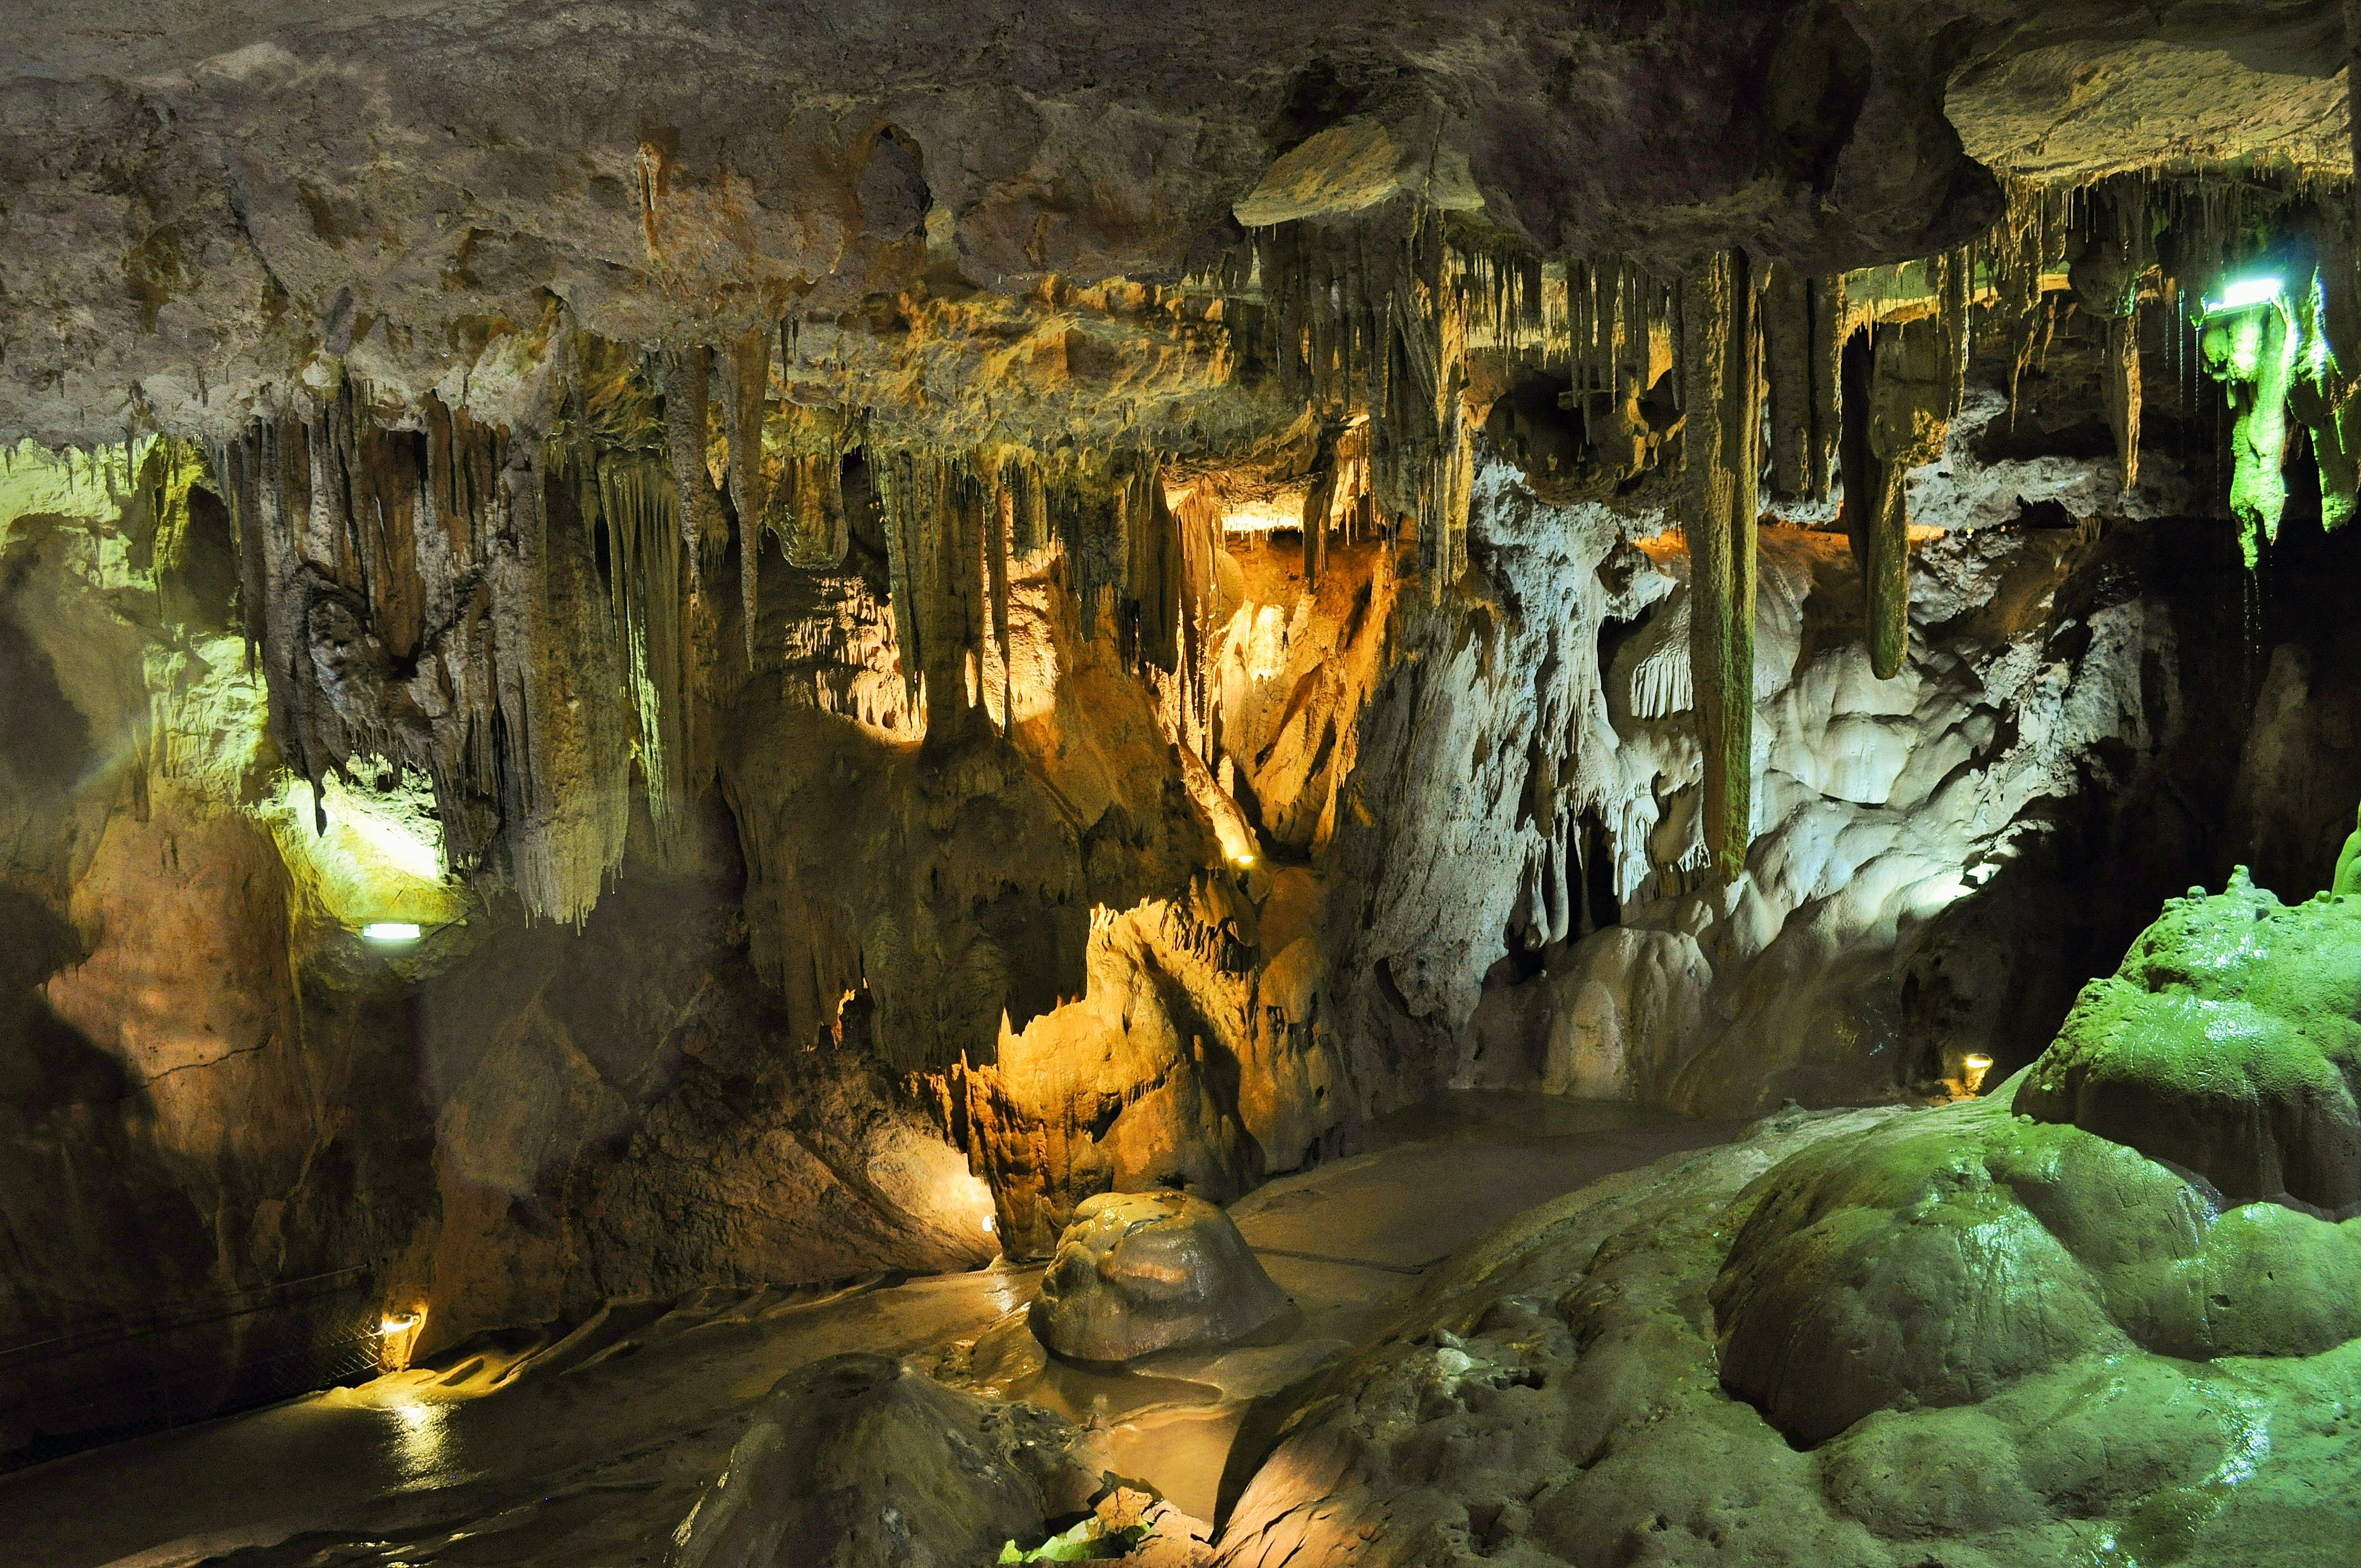 Interior Photography of Cave